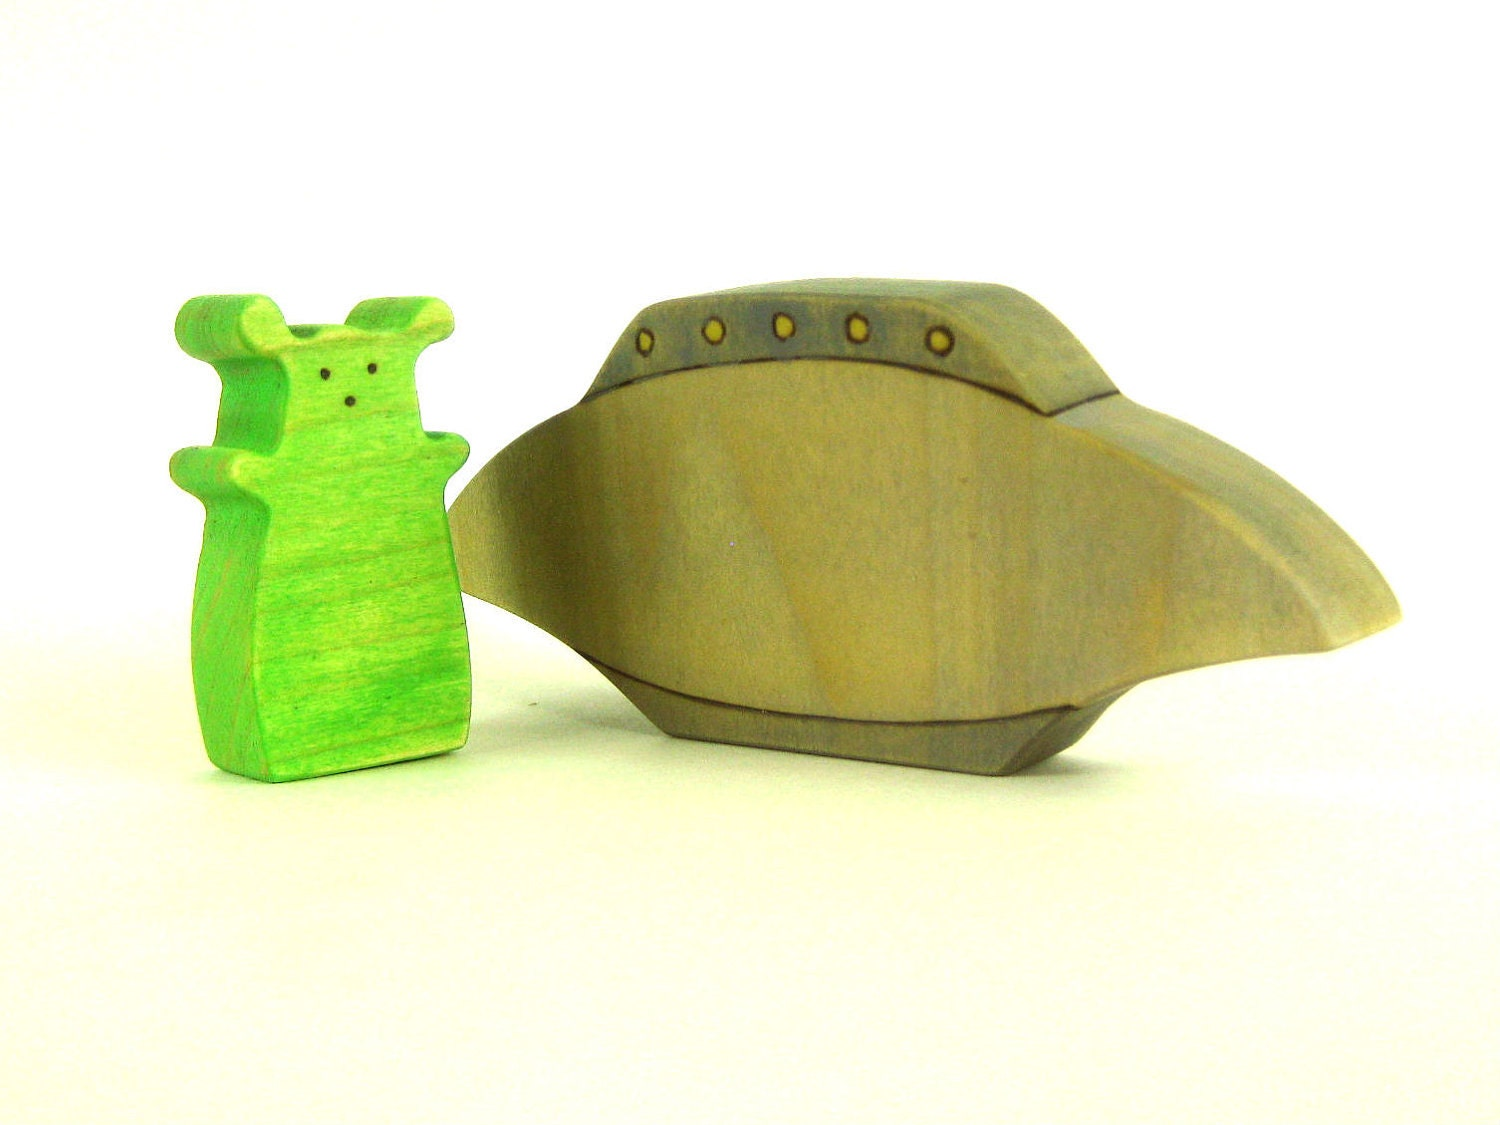 Alien and UFO Wood Toy - Kids Toy - Wooden Toy - ArmadilloDreams